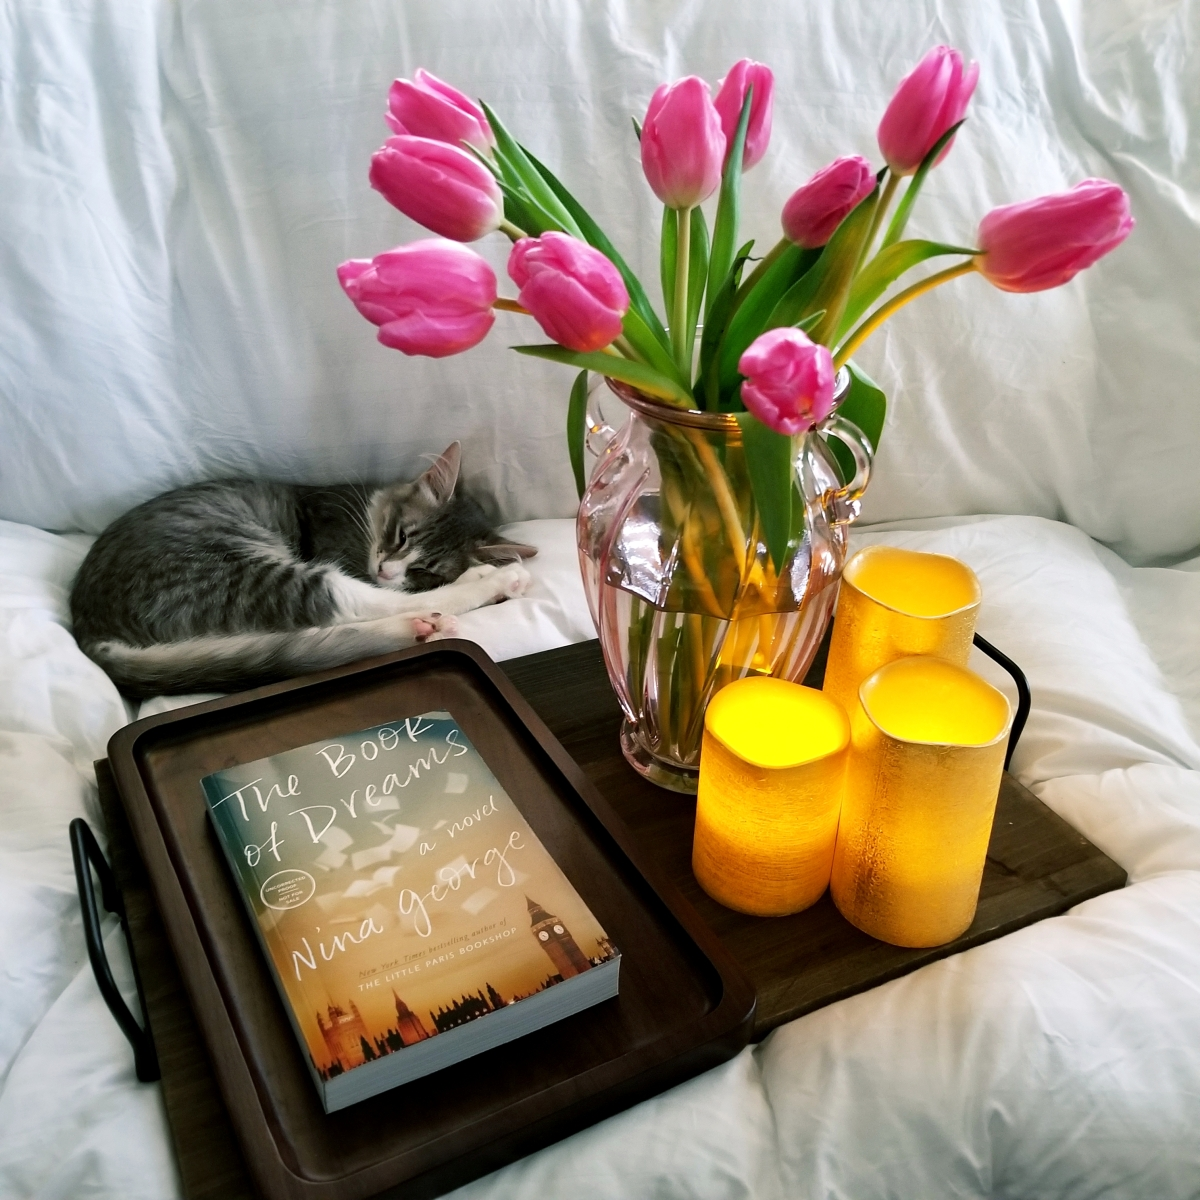 The Book of Dreams by Nina George #bookreview #tarheelreader #thrbookofdreams @nina_george @crownpublishing #thebookofdreams